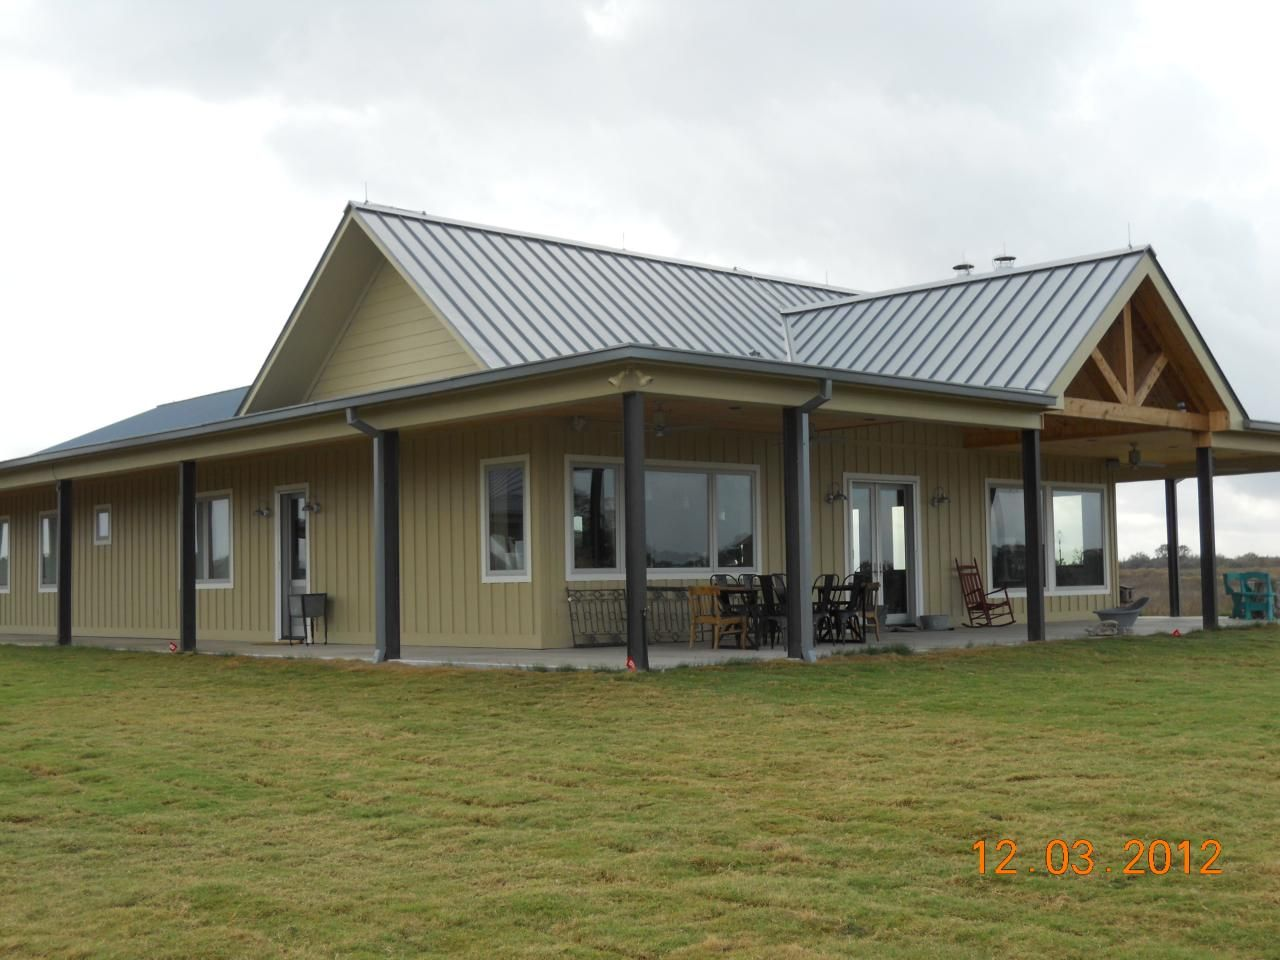 Texas barndominium house plans picture gallery custom for Barn style houses